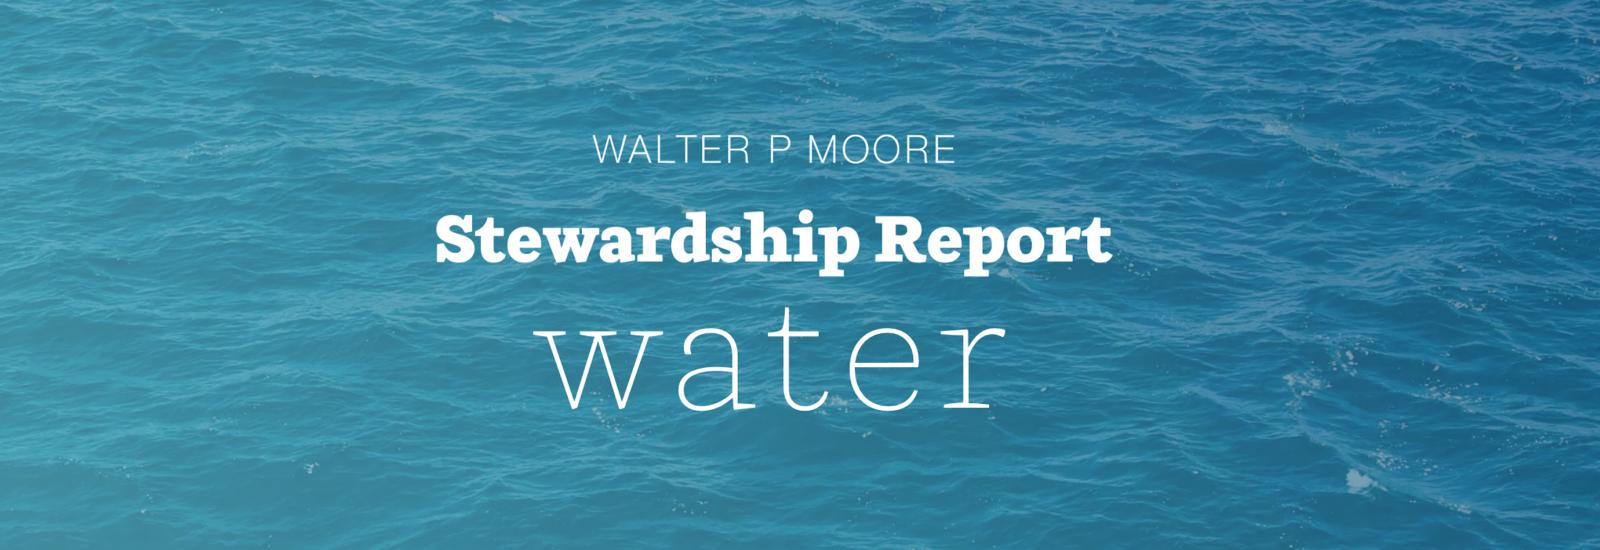 Stewardship Report - Water